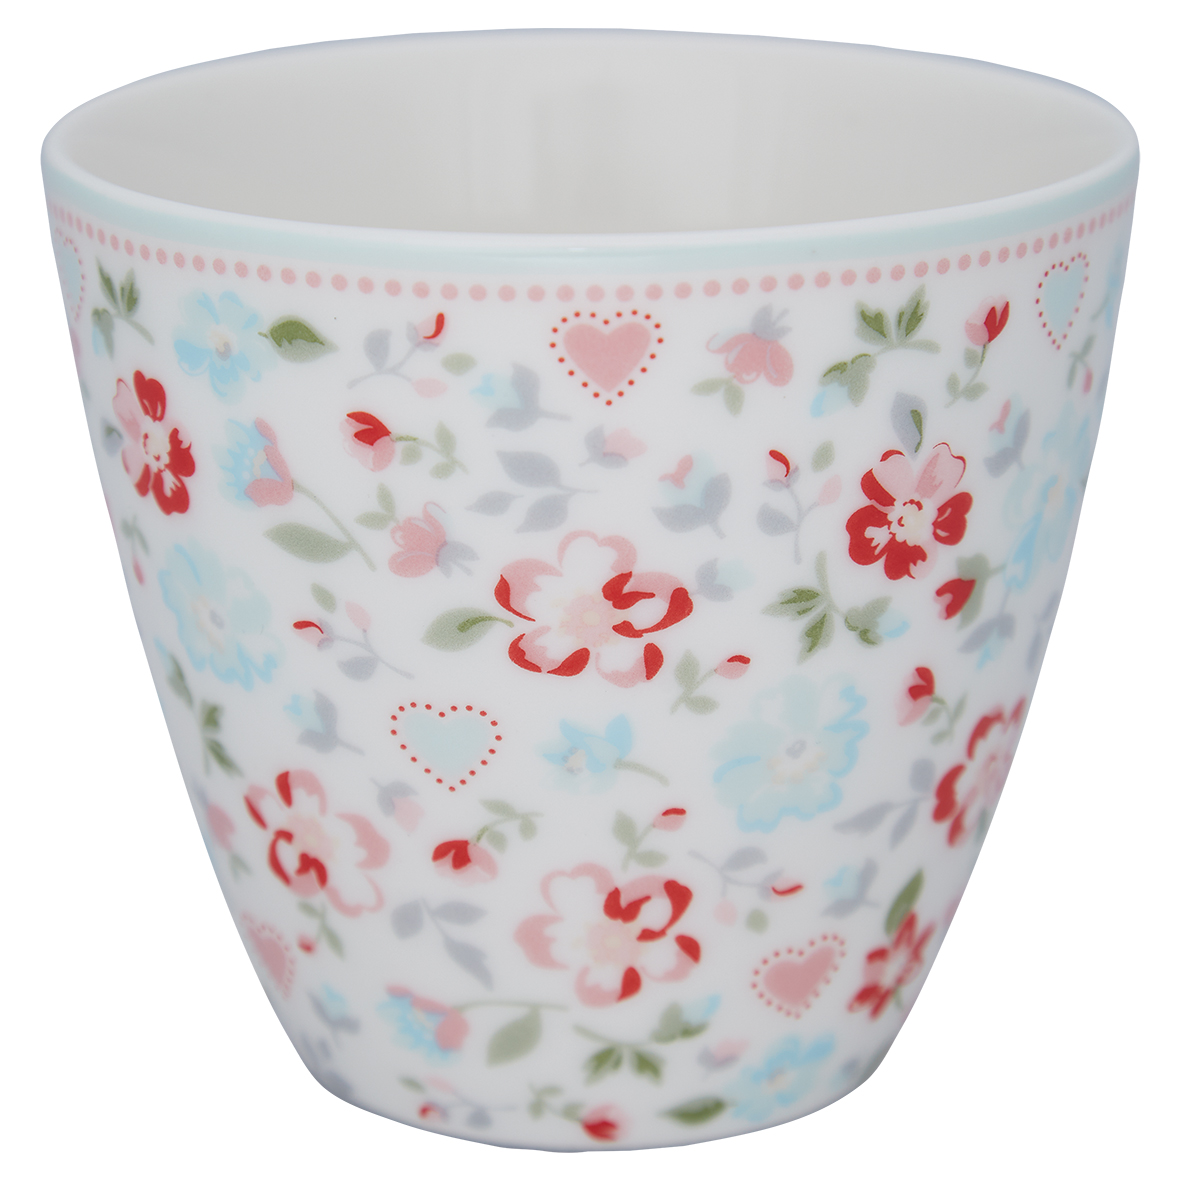 Latte Cup - Merla white - Greengate